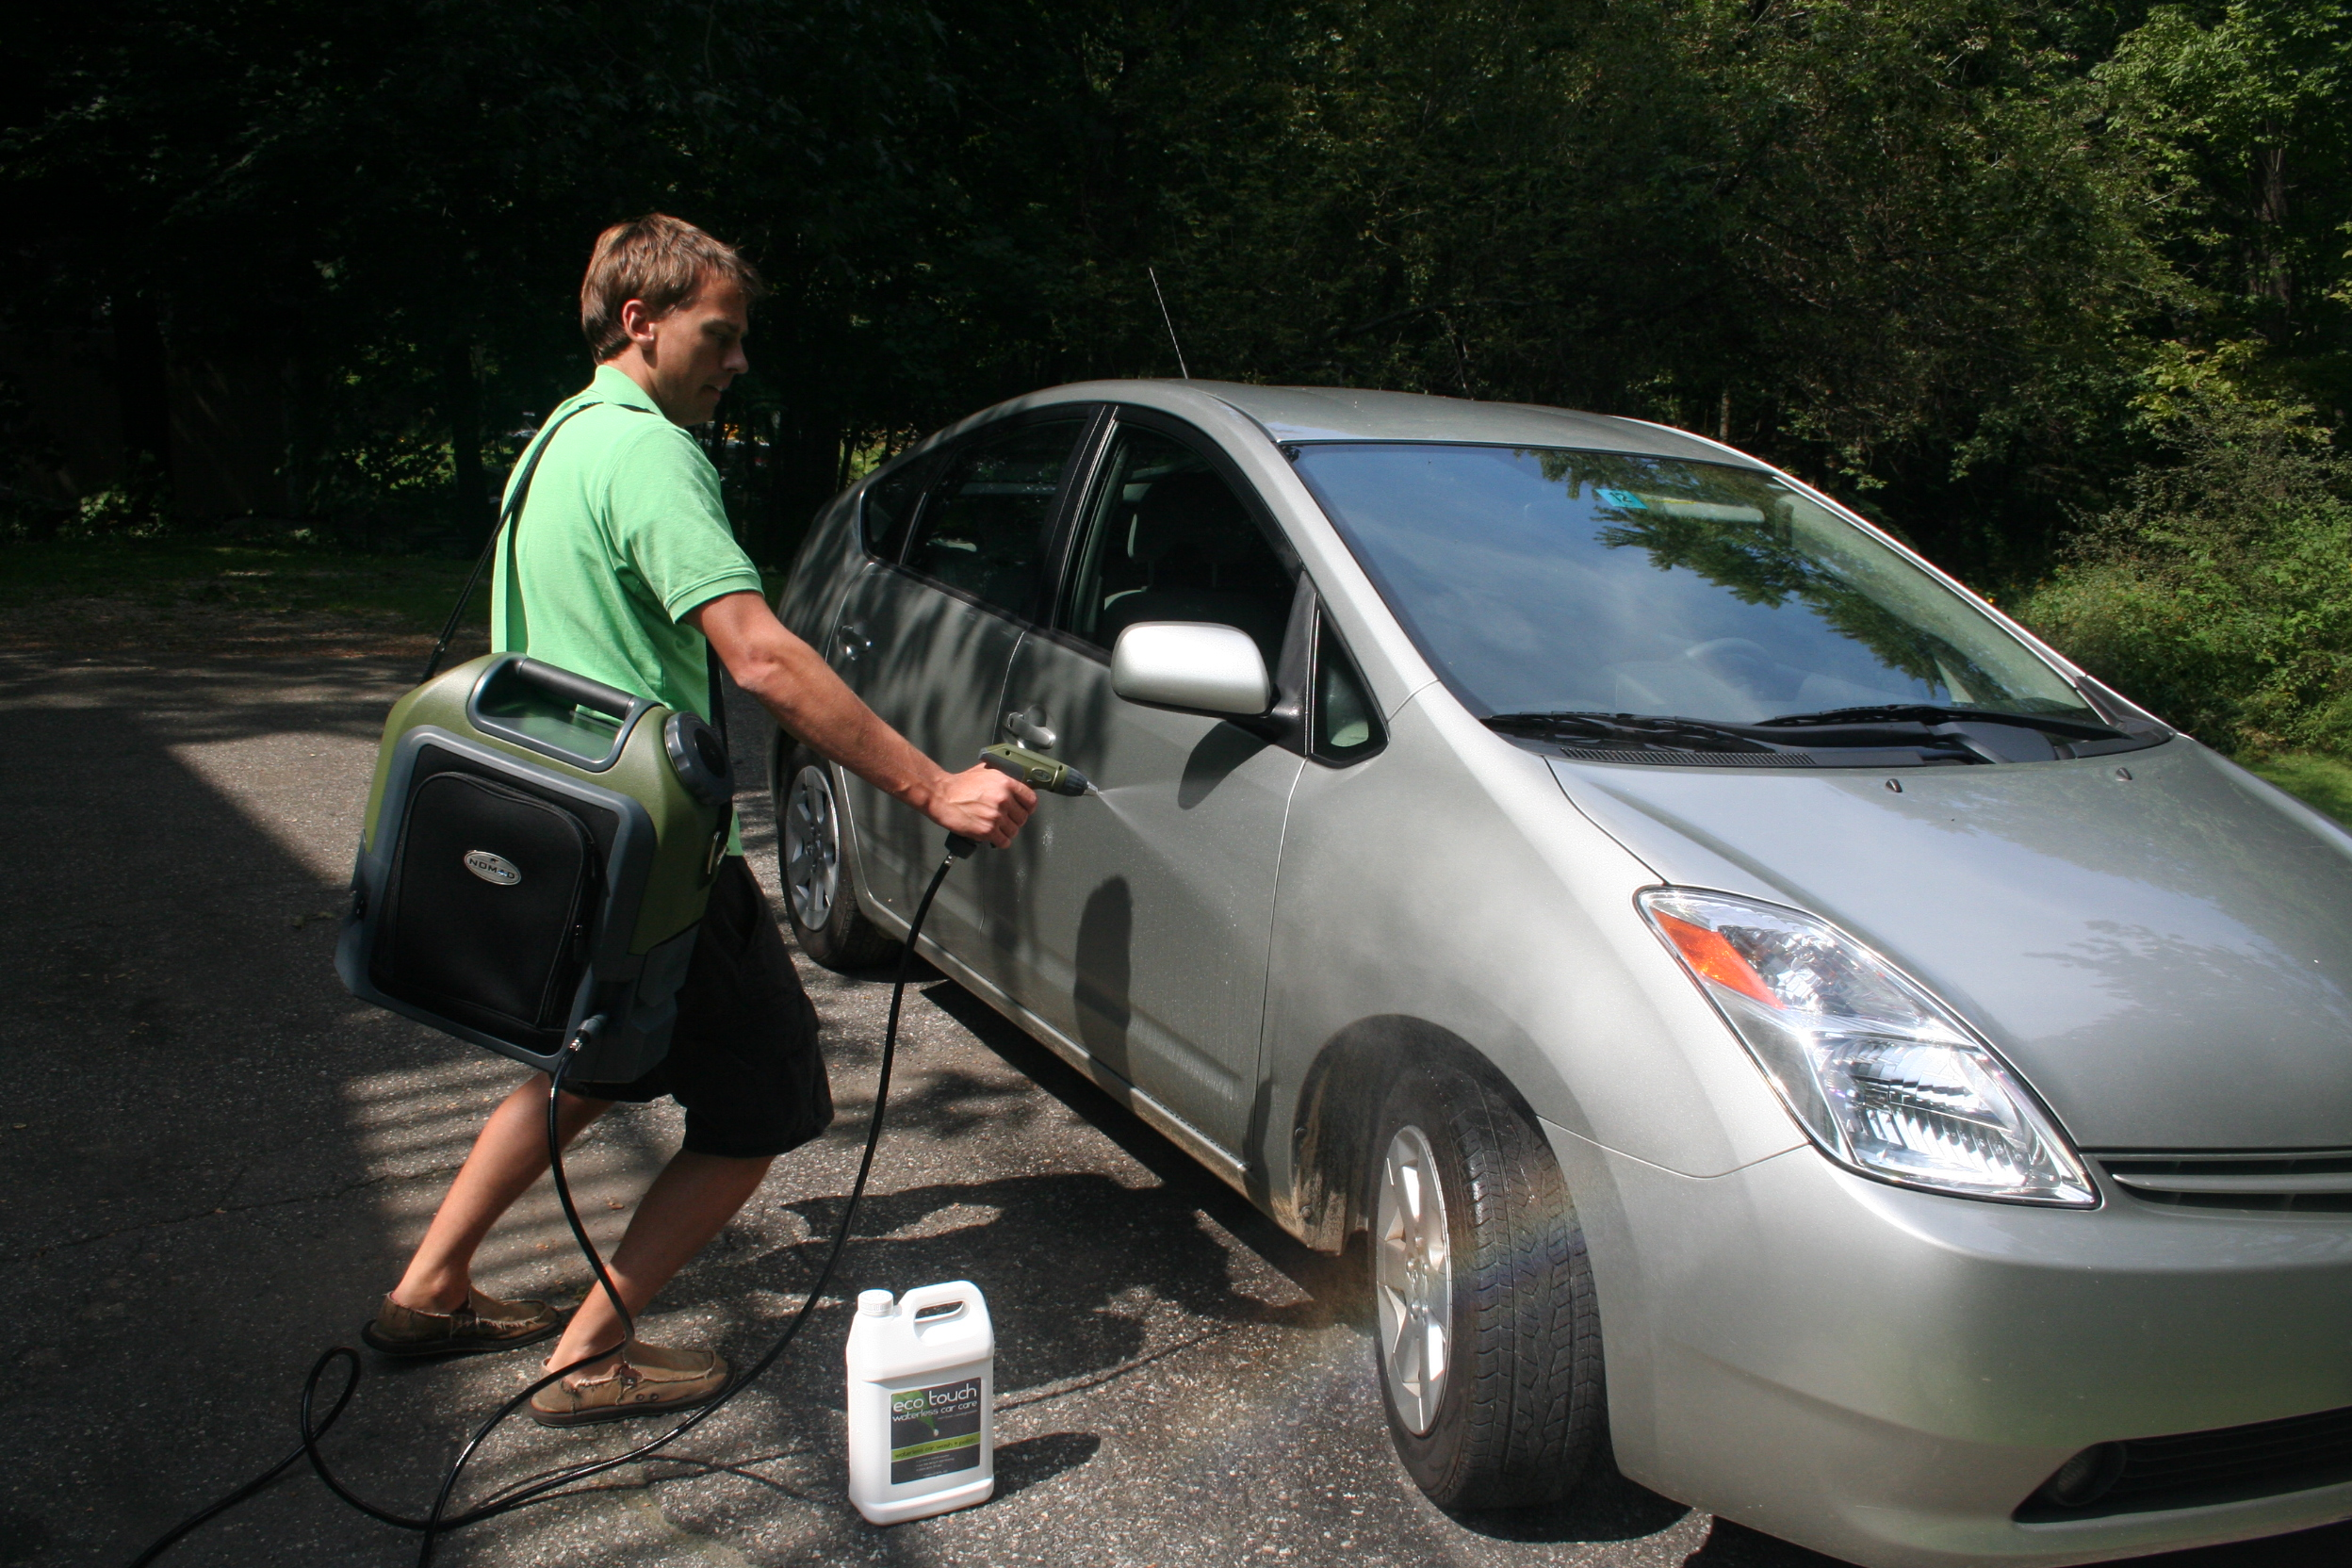 Eco Touch Introduces Innovative Portable Waterless Car